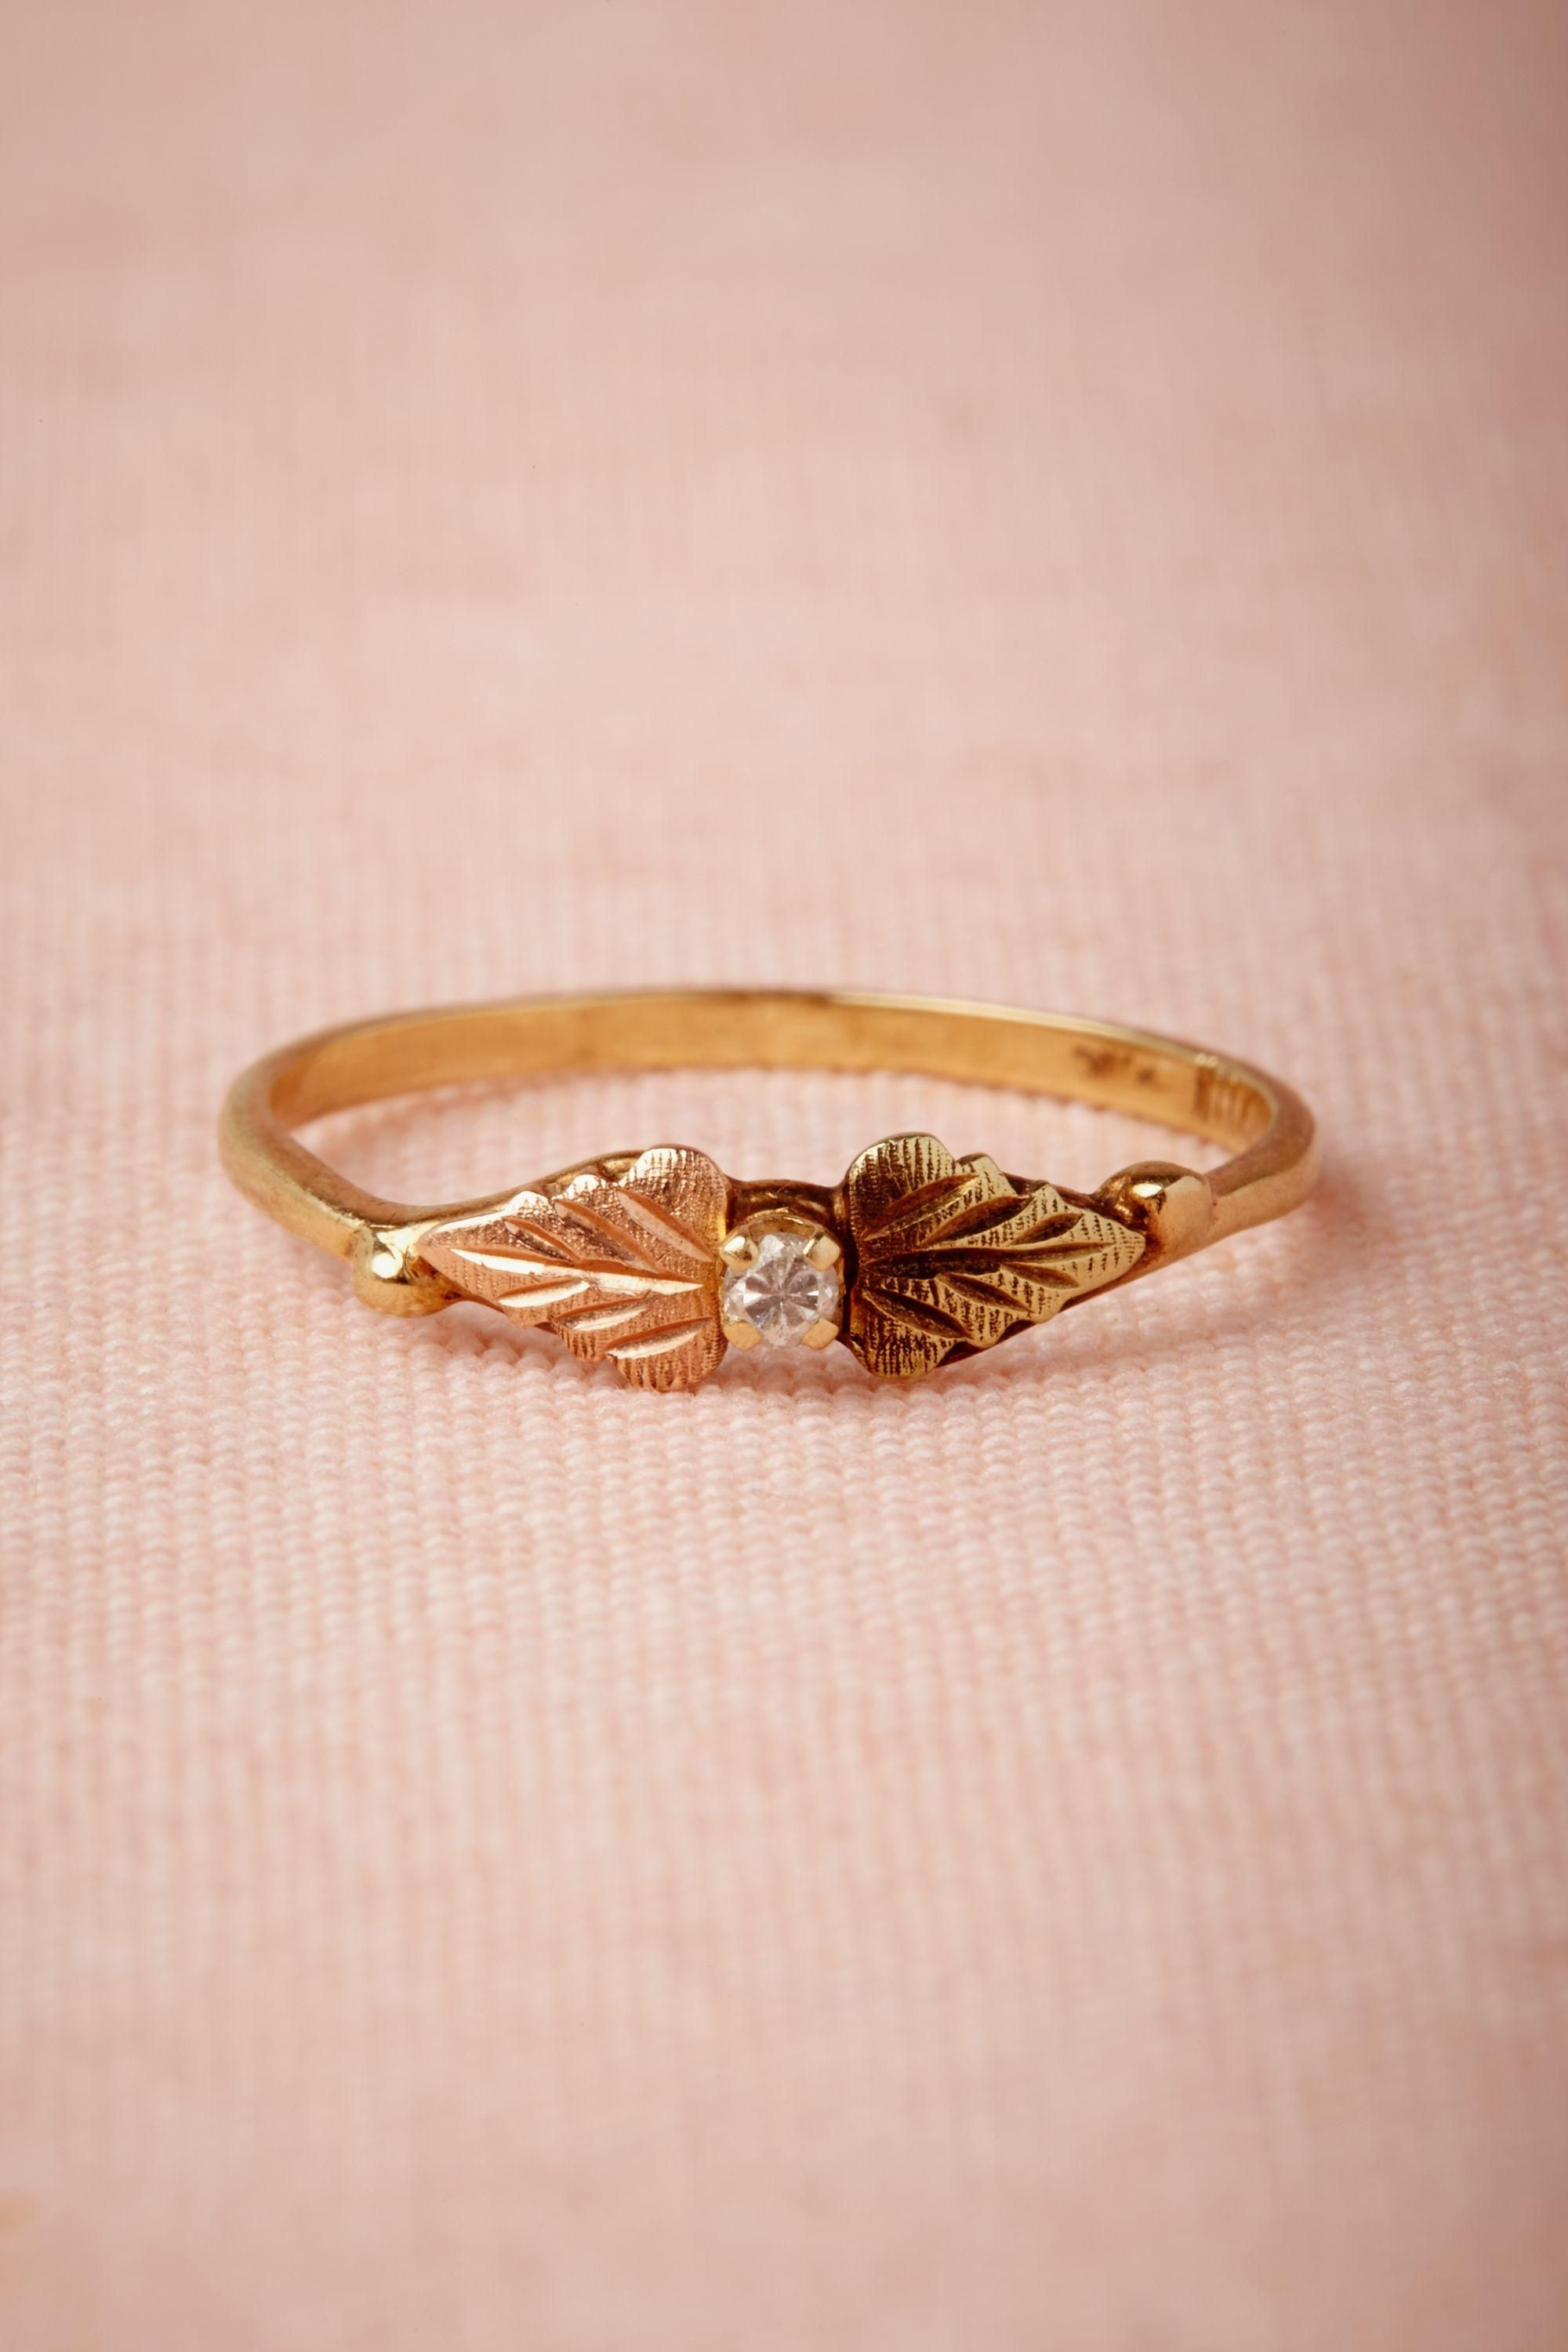 cute ring | Jewelry | Pinterest | Ring, Gold rings and Diamond